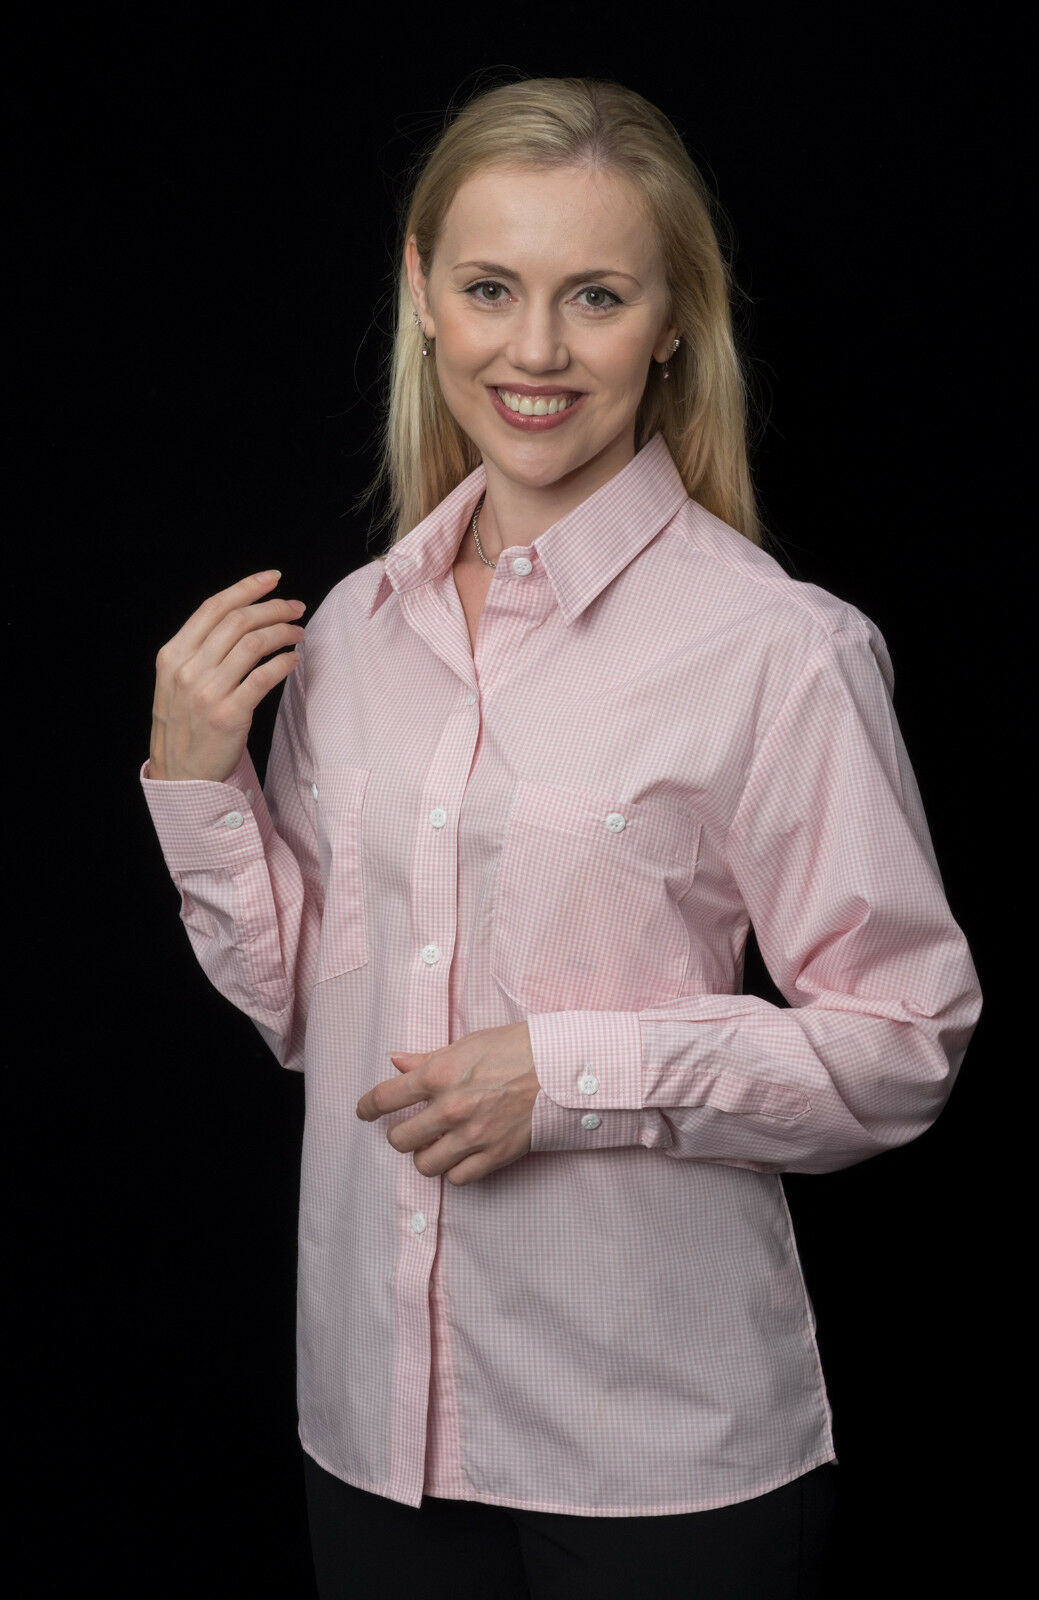 Ladies Blouse - Ladies Shirt - Australian Traditional Clothing - 610217